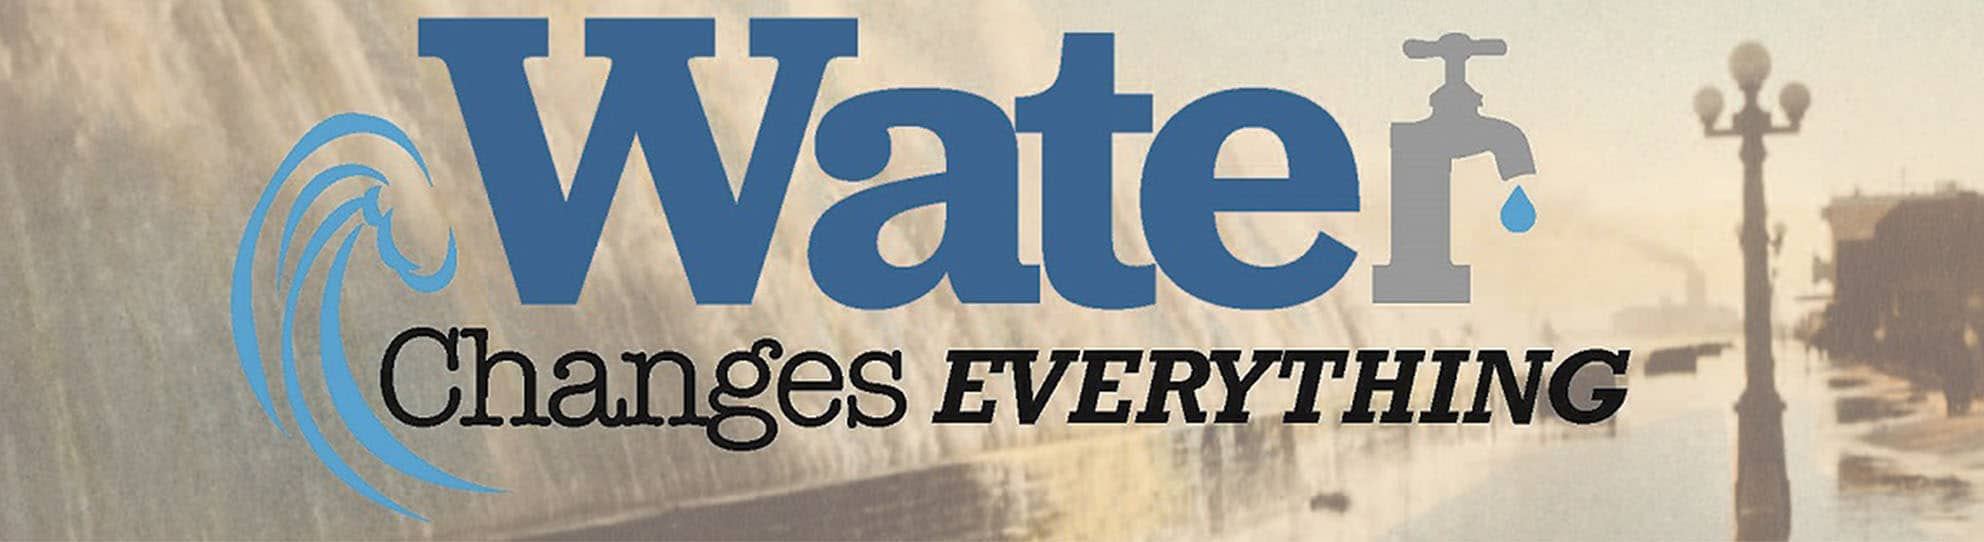 Water changes everything banner